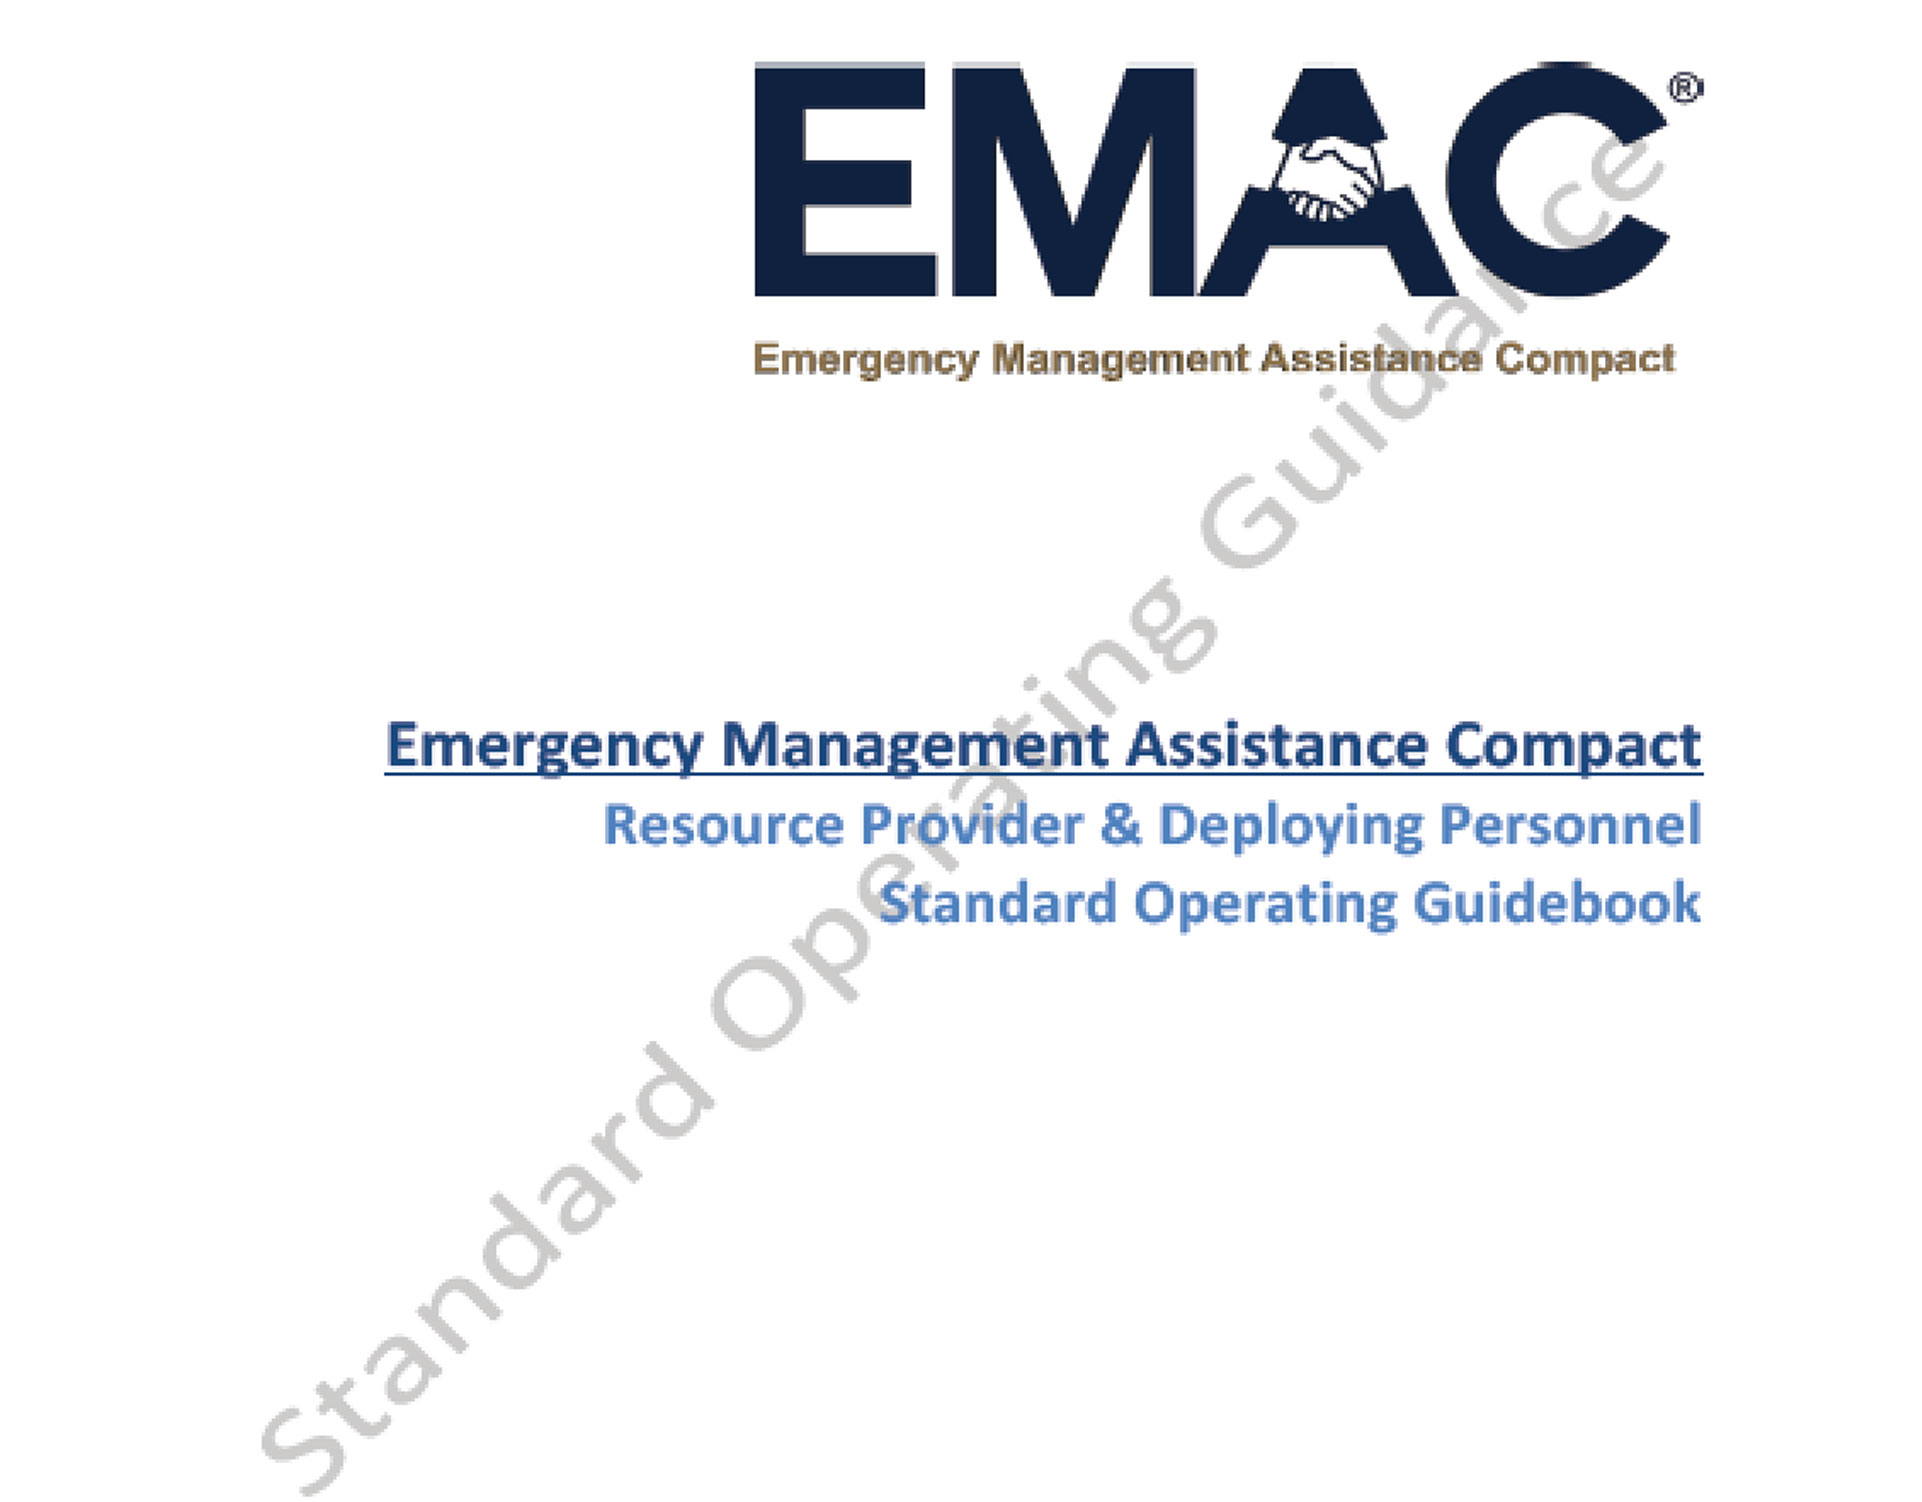 EMAC SOG: Deploying Personnel & Resource Providers